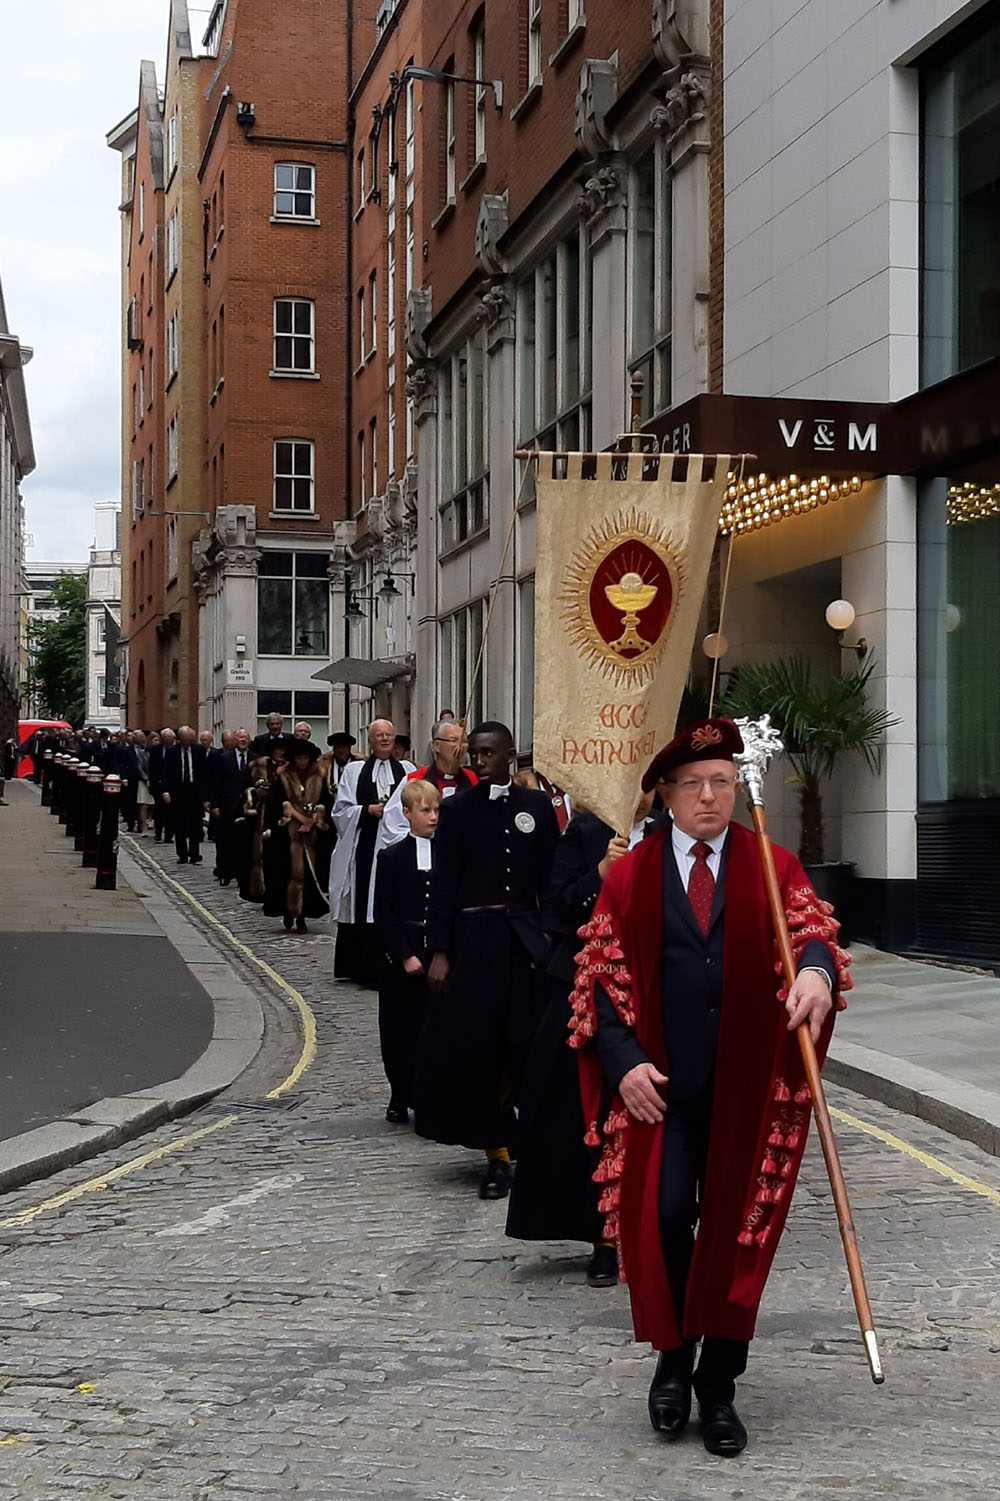 A line of people in traditional dress, The Worshipful Company of Skinners, process to St James along a London street holding a flag